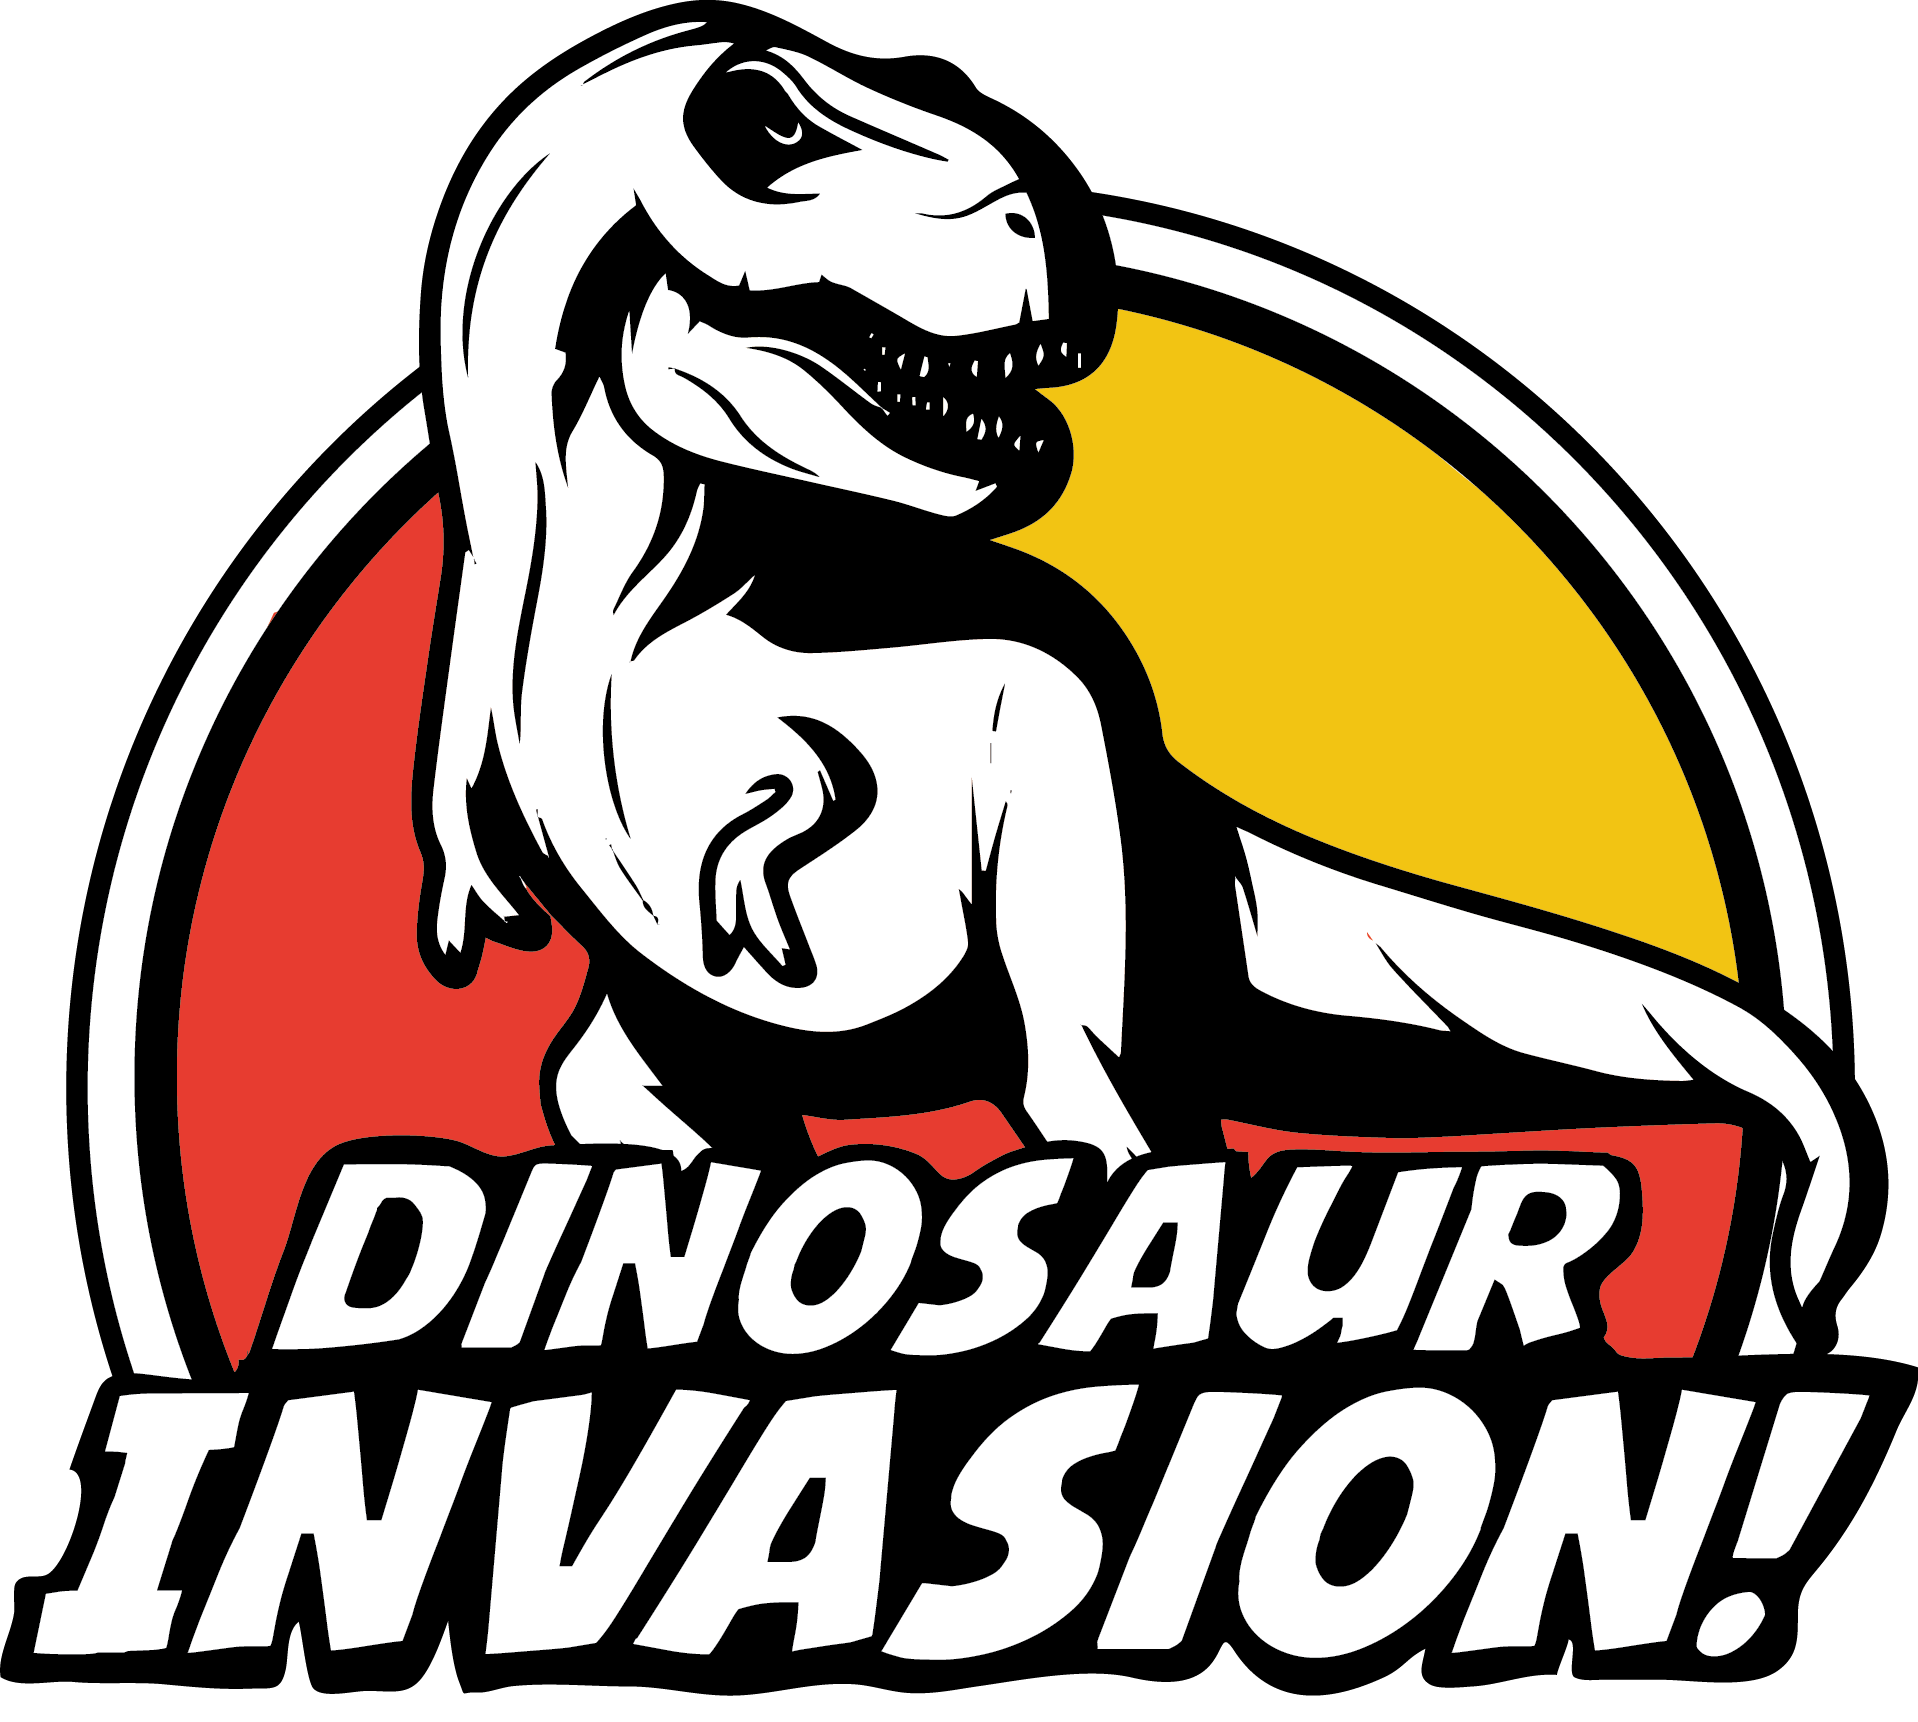 Dinosaur Invasion!